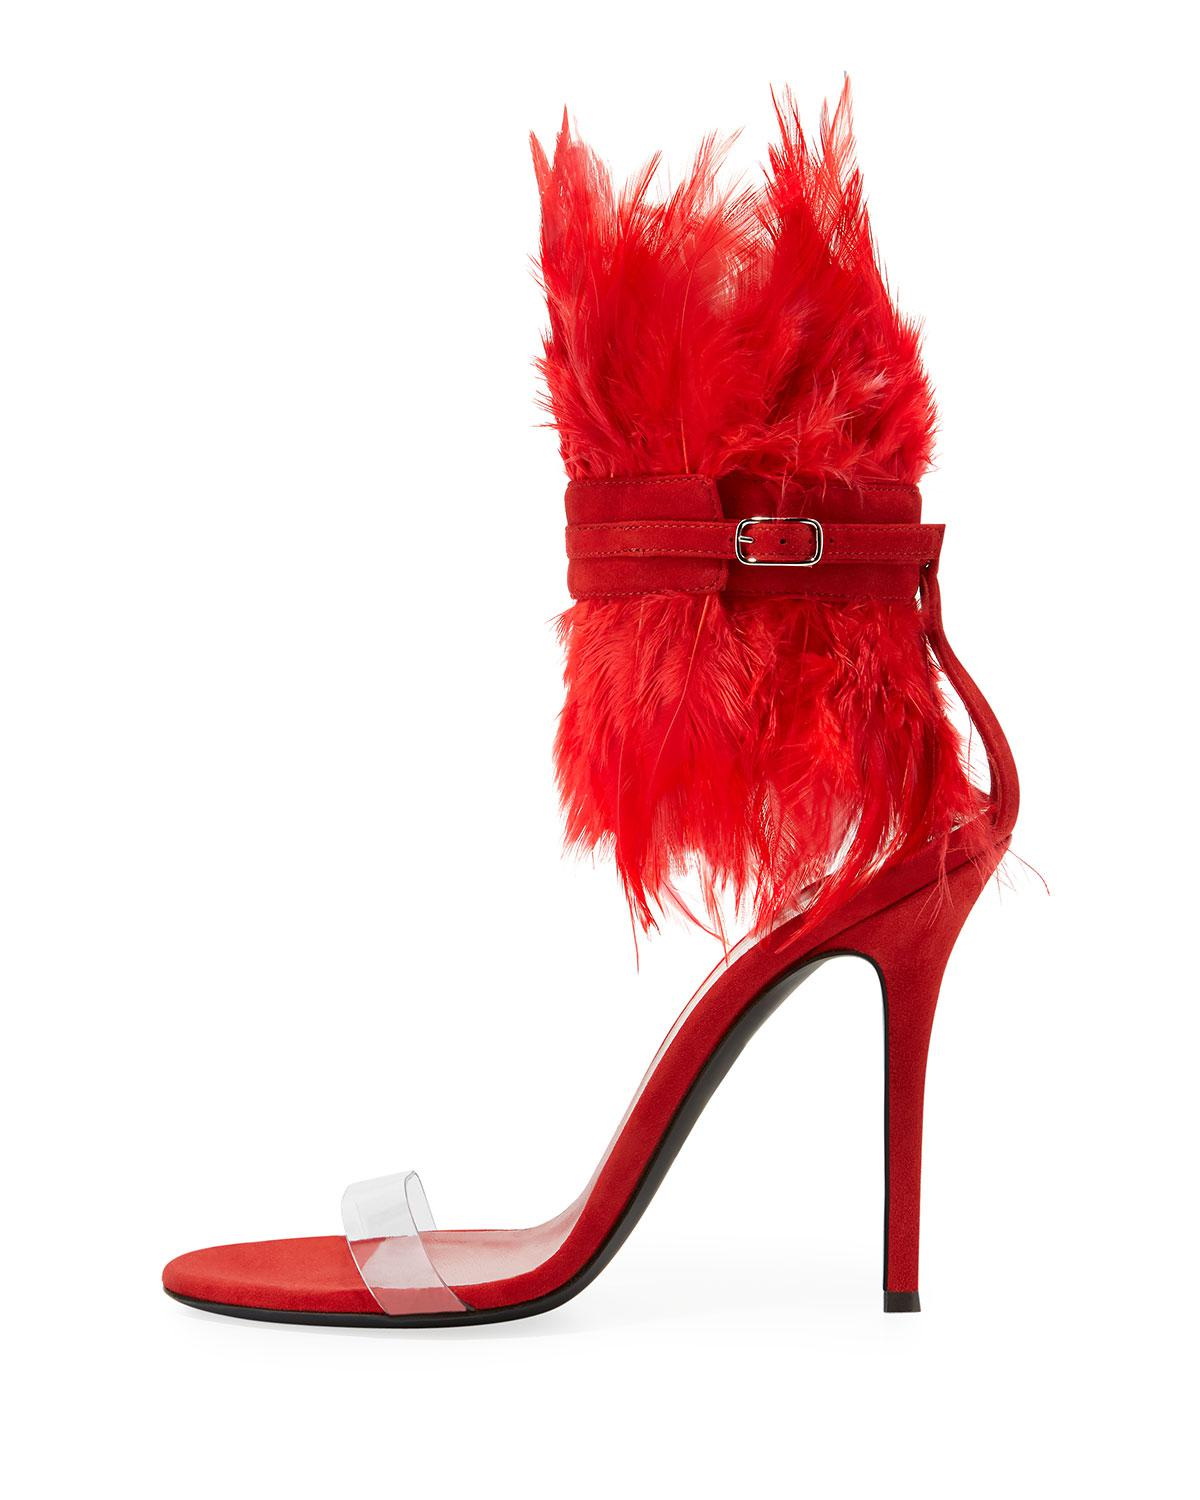 74b79a51931 Lyst - Giuseppe Zanotti Feather High Red Sole Sandals in Red